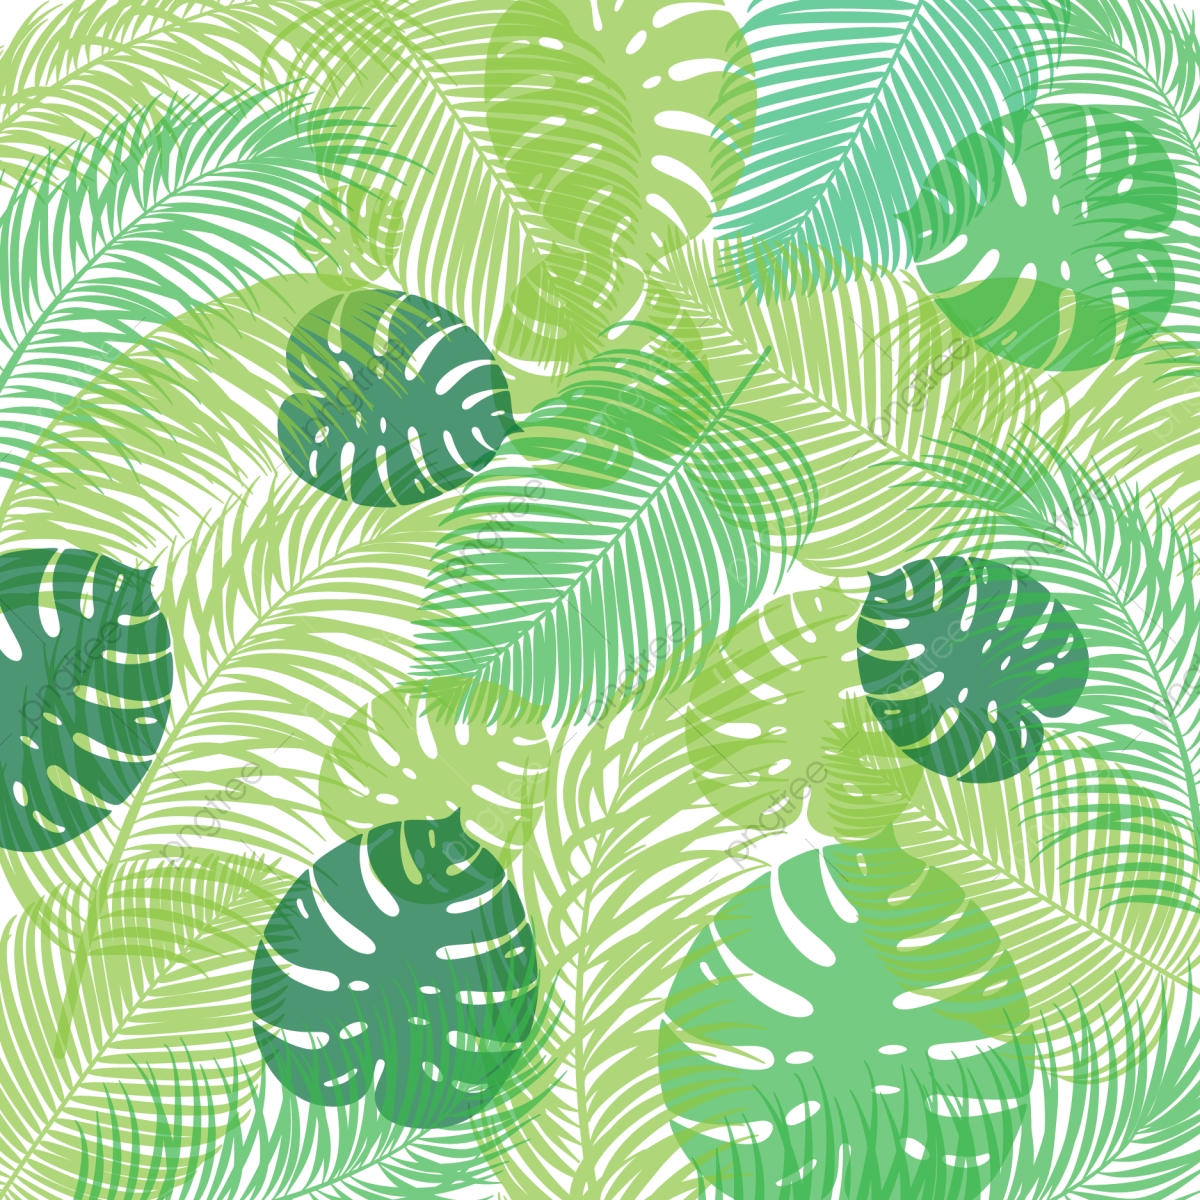 Trendy Tropical Palm Leaves In Green Tone Background Palm Pattern Tropical Png And Vector With Transparent Background For Free Download Download as svg vector, transparent png, eps or psd. https pngtree com freepng trendy tropical palm leaves in green tone background 4236237 html